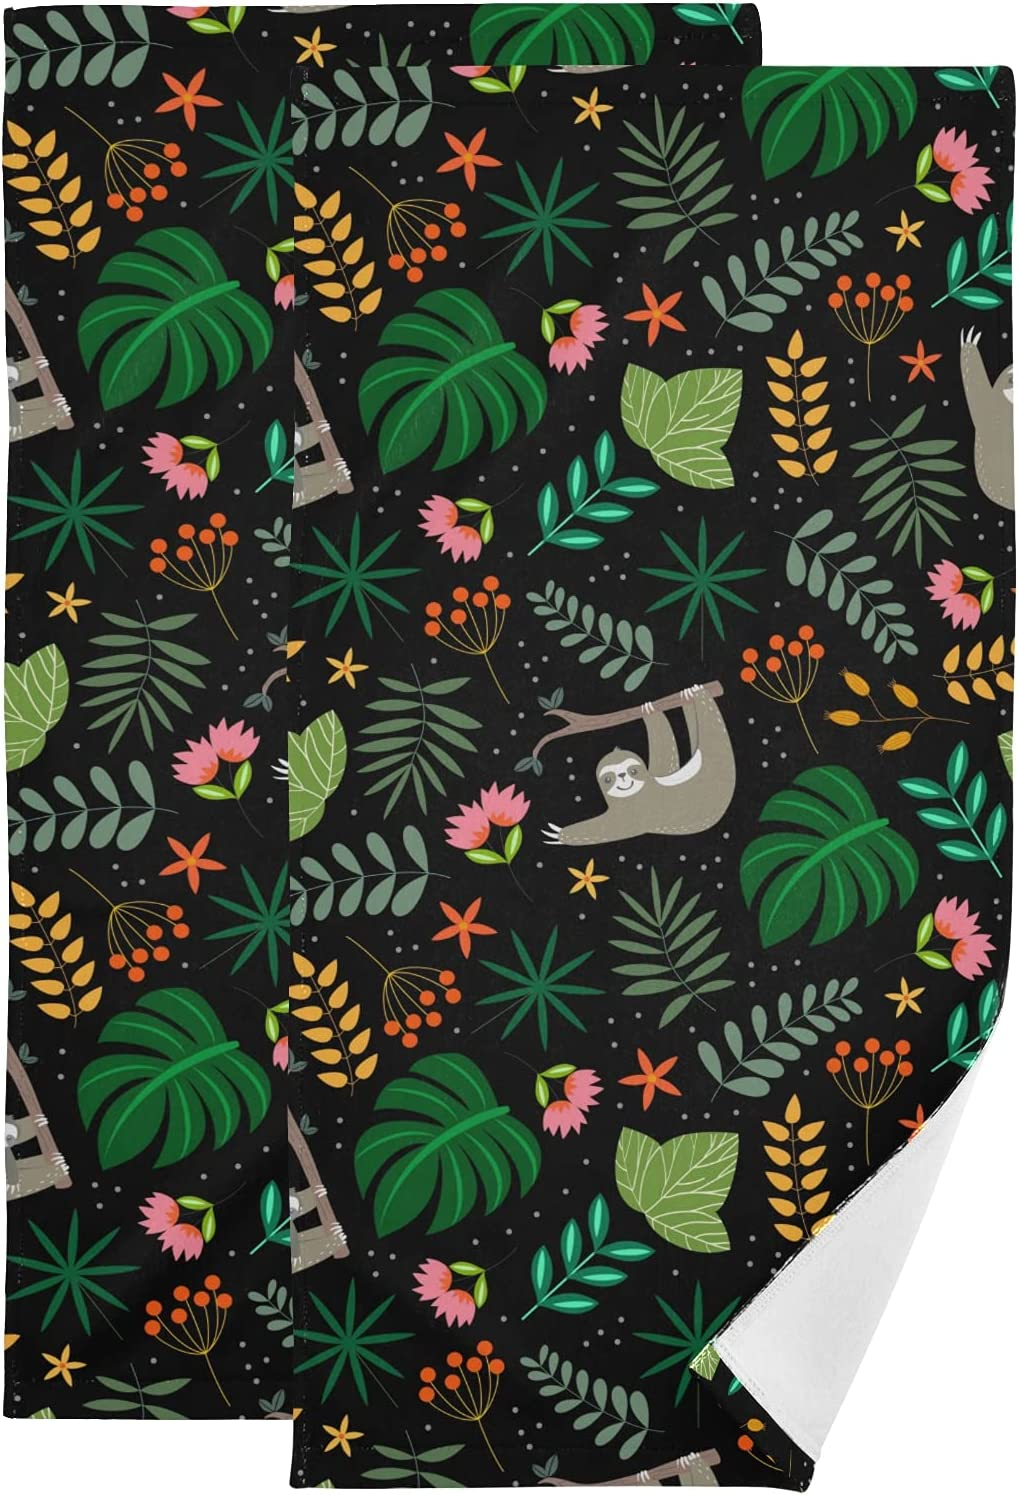 Floral Plants Sloth and Flowers in Max 46% OFF Black Set 2 Towel El Paso Mall Face of Han